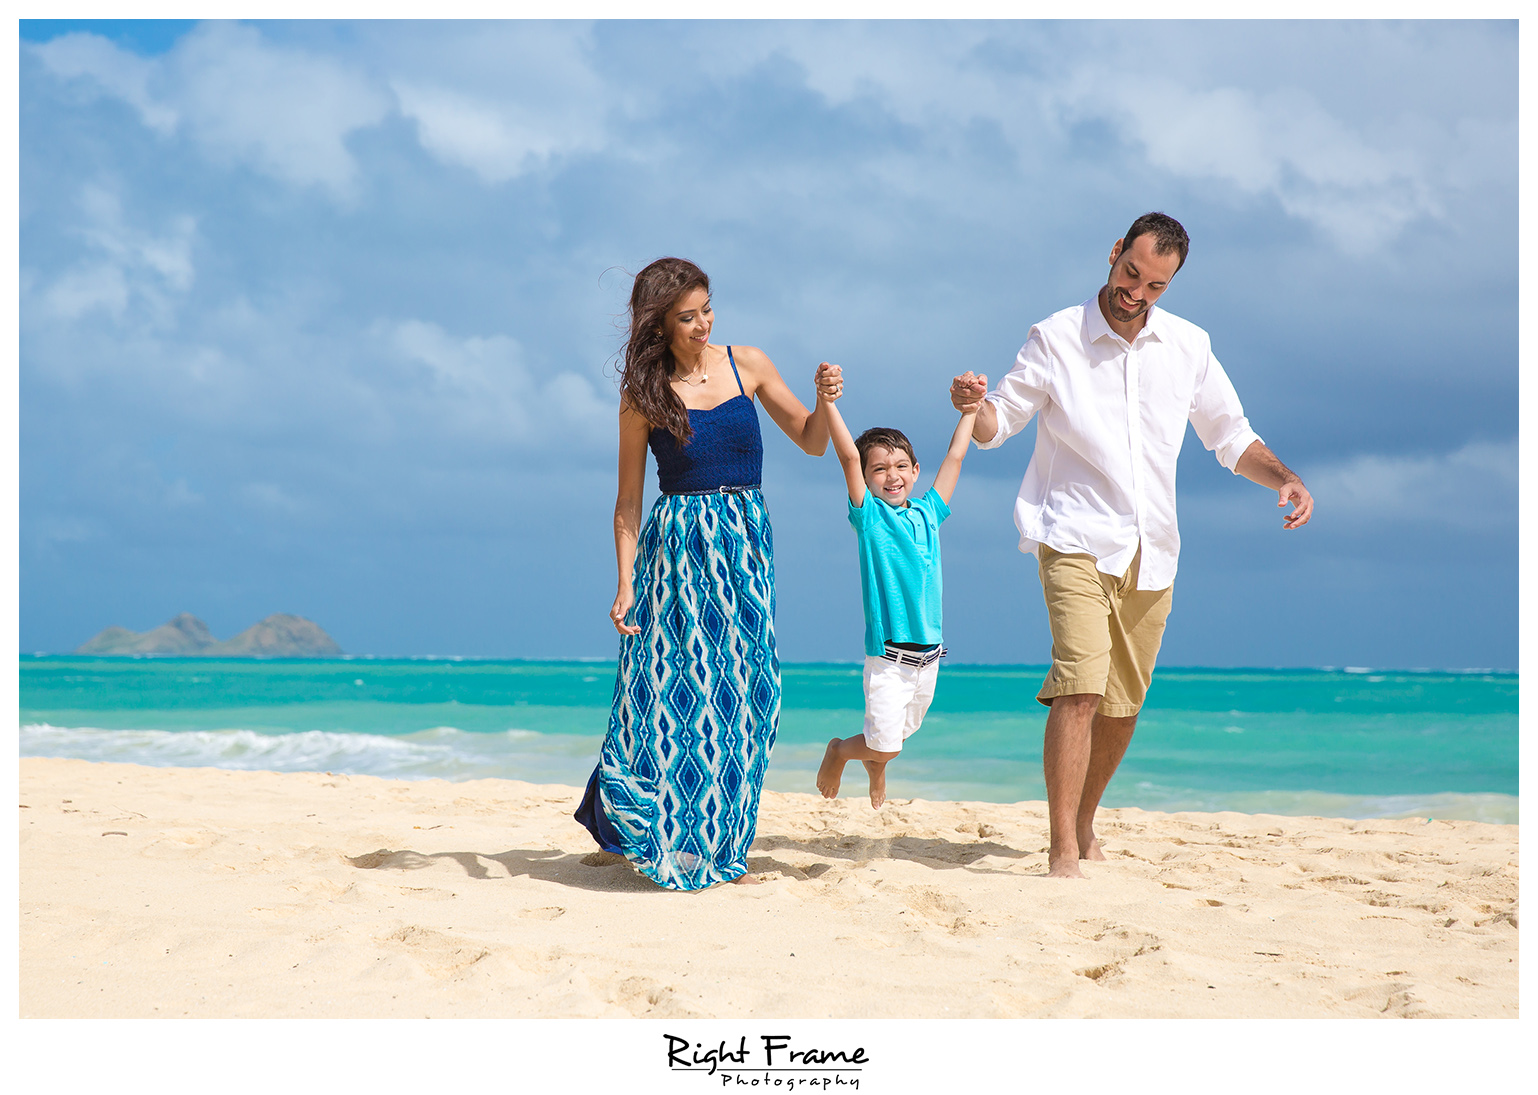 Oahu Hawaii Family Photography by Right Frame